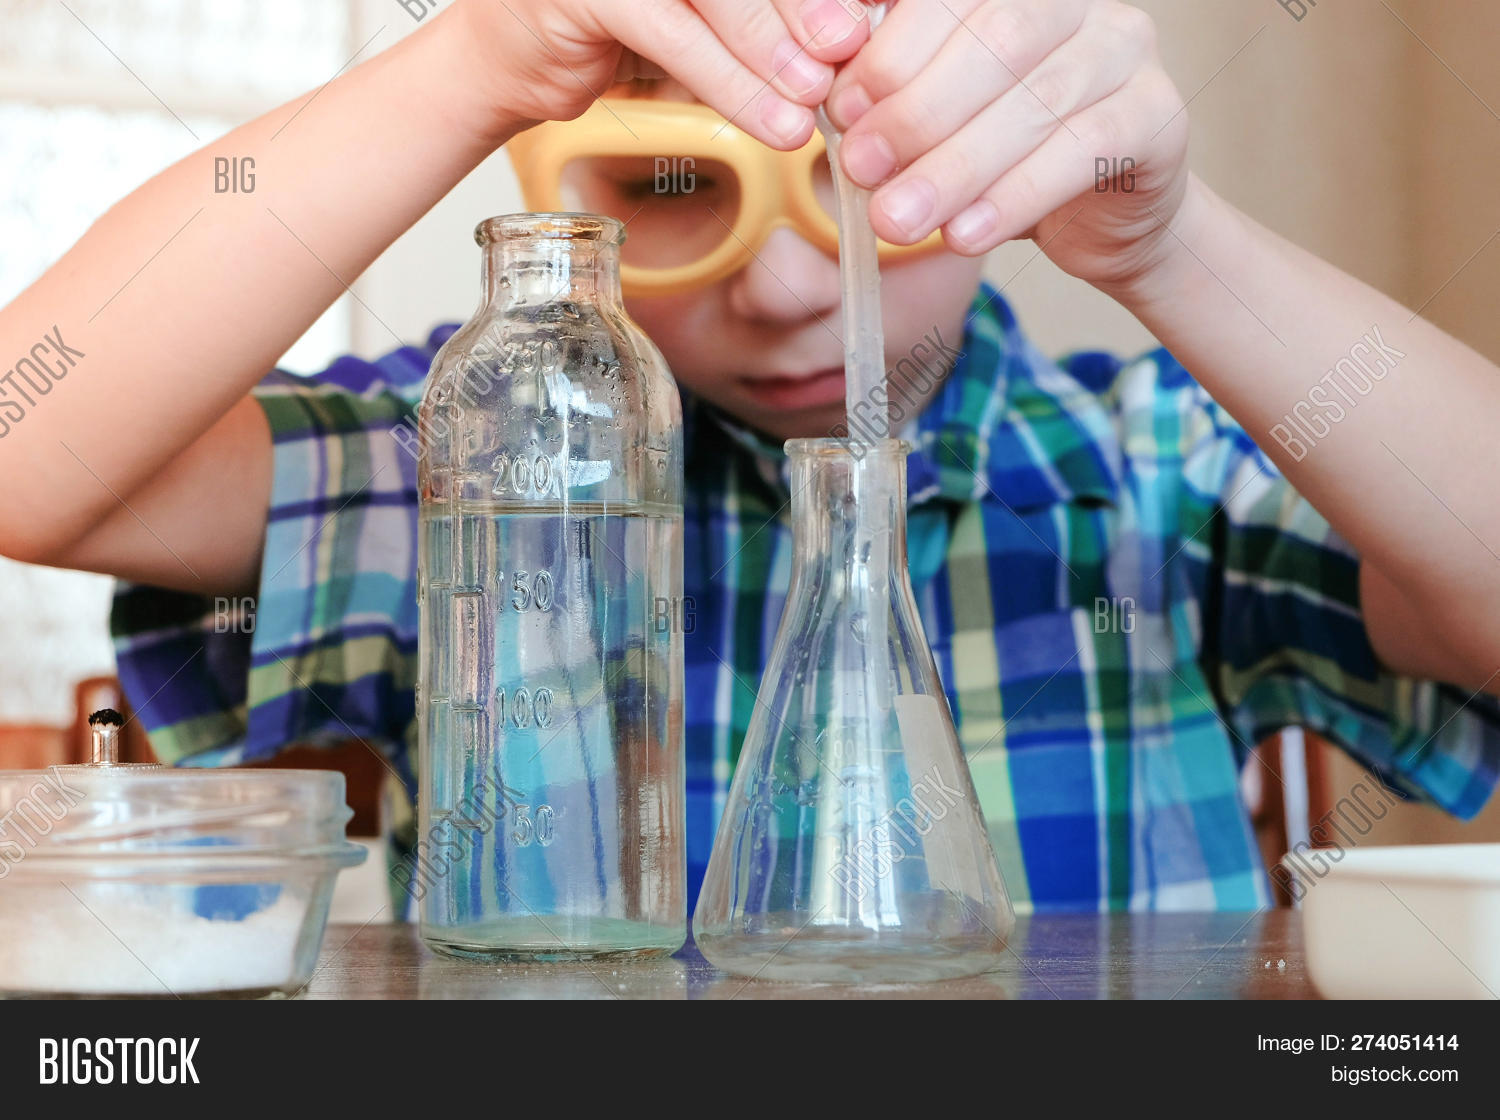 Chemistry Experiments Image & Photo (Free Trial) | Bigstock